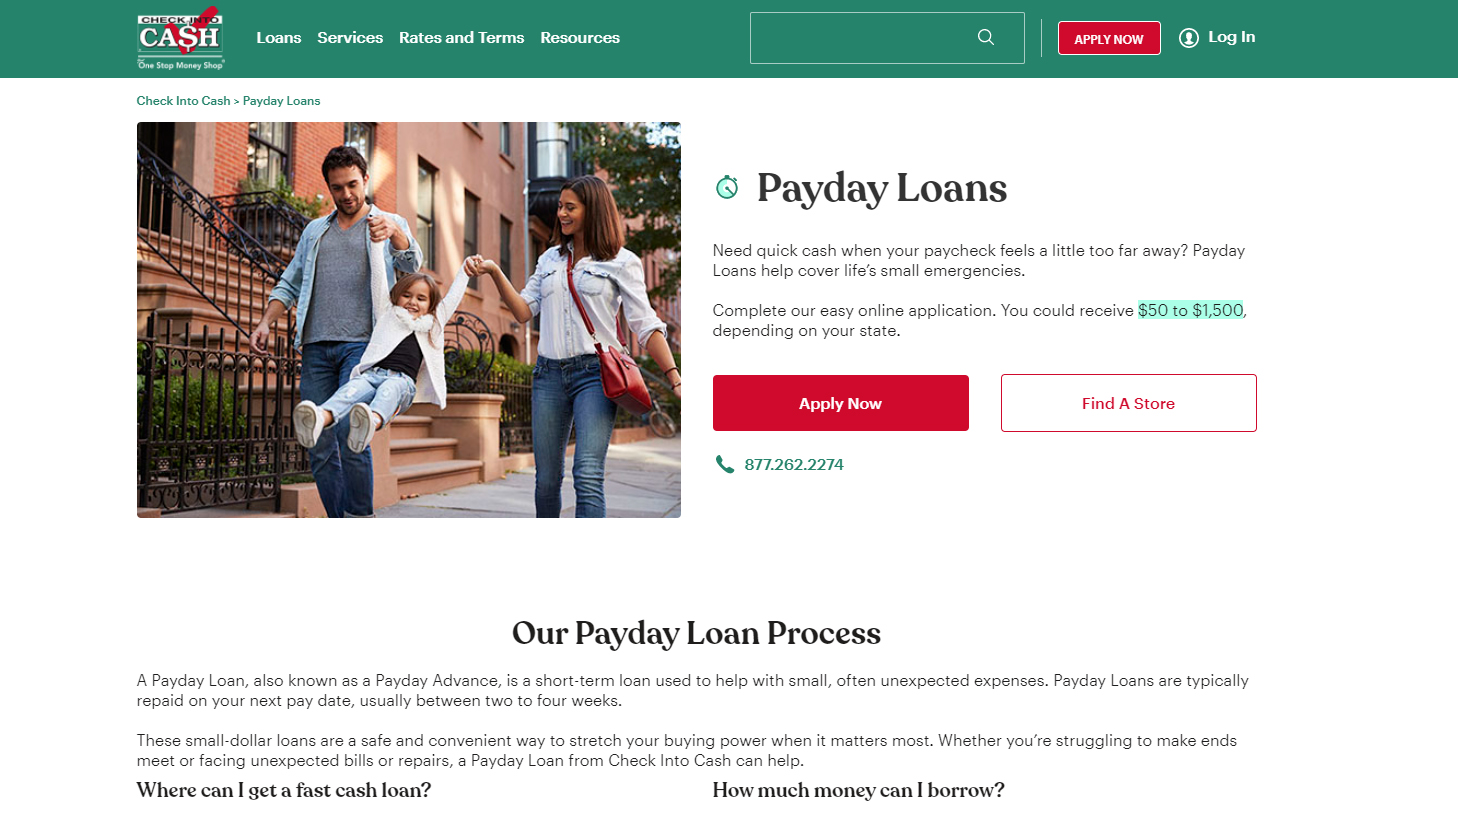 Check Into Cash Payday Loans